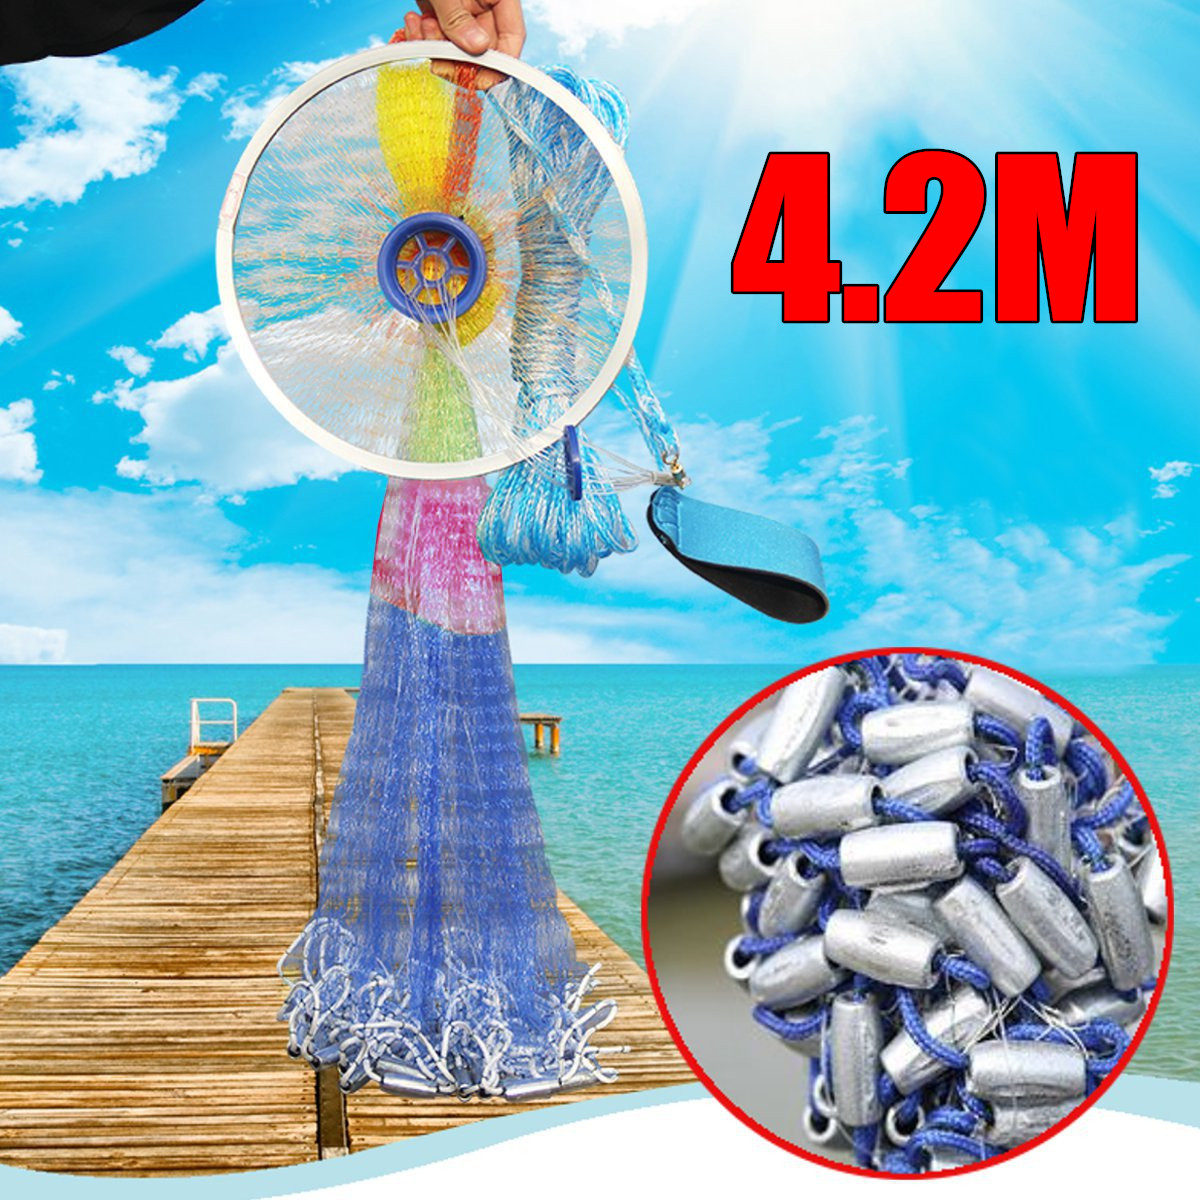 Aluminum ring USA cast nets 4.2m easy throw fly fishing net tool small mesh outdoor hand throw catch fish network все цены